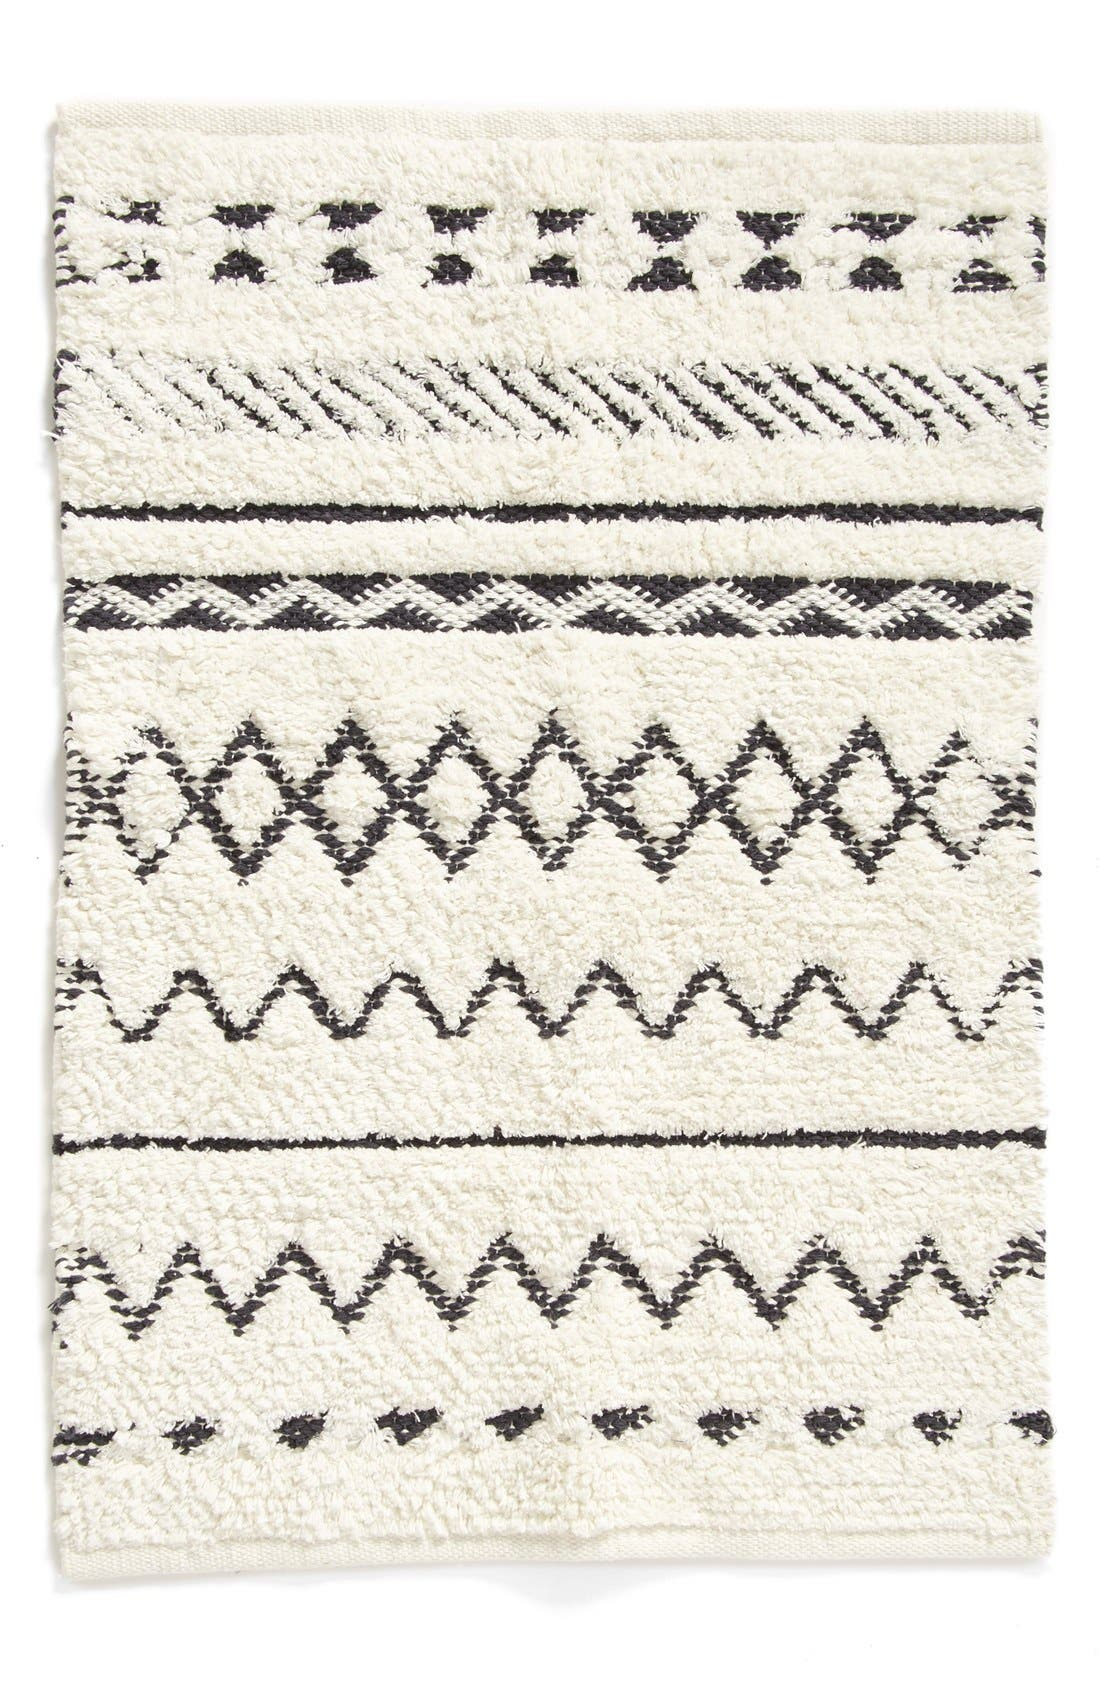 Alternate Image 1 Selected - Nordstrom at Home 'Diamond' Hand Tufted Cotton Rug